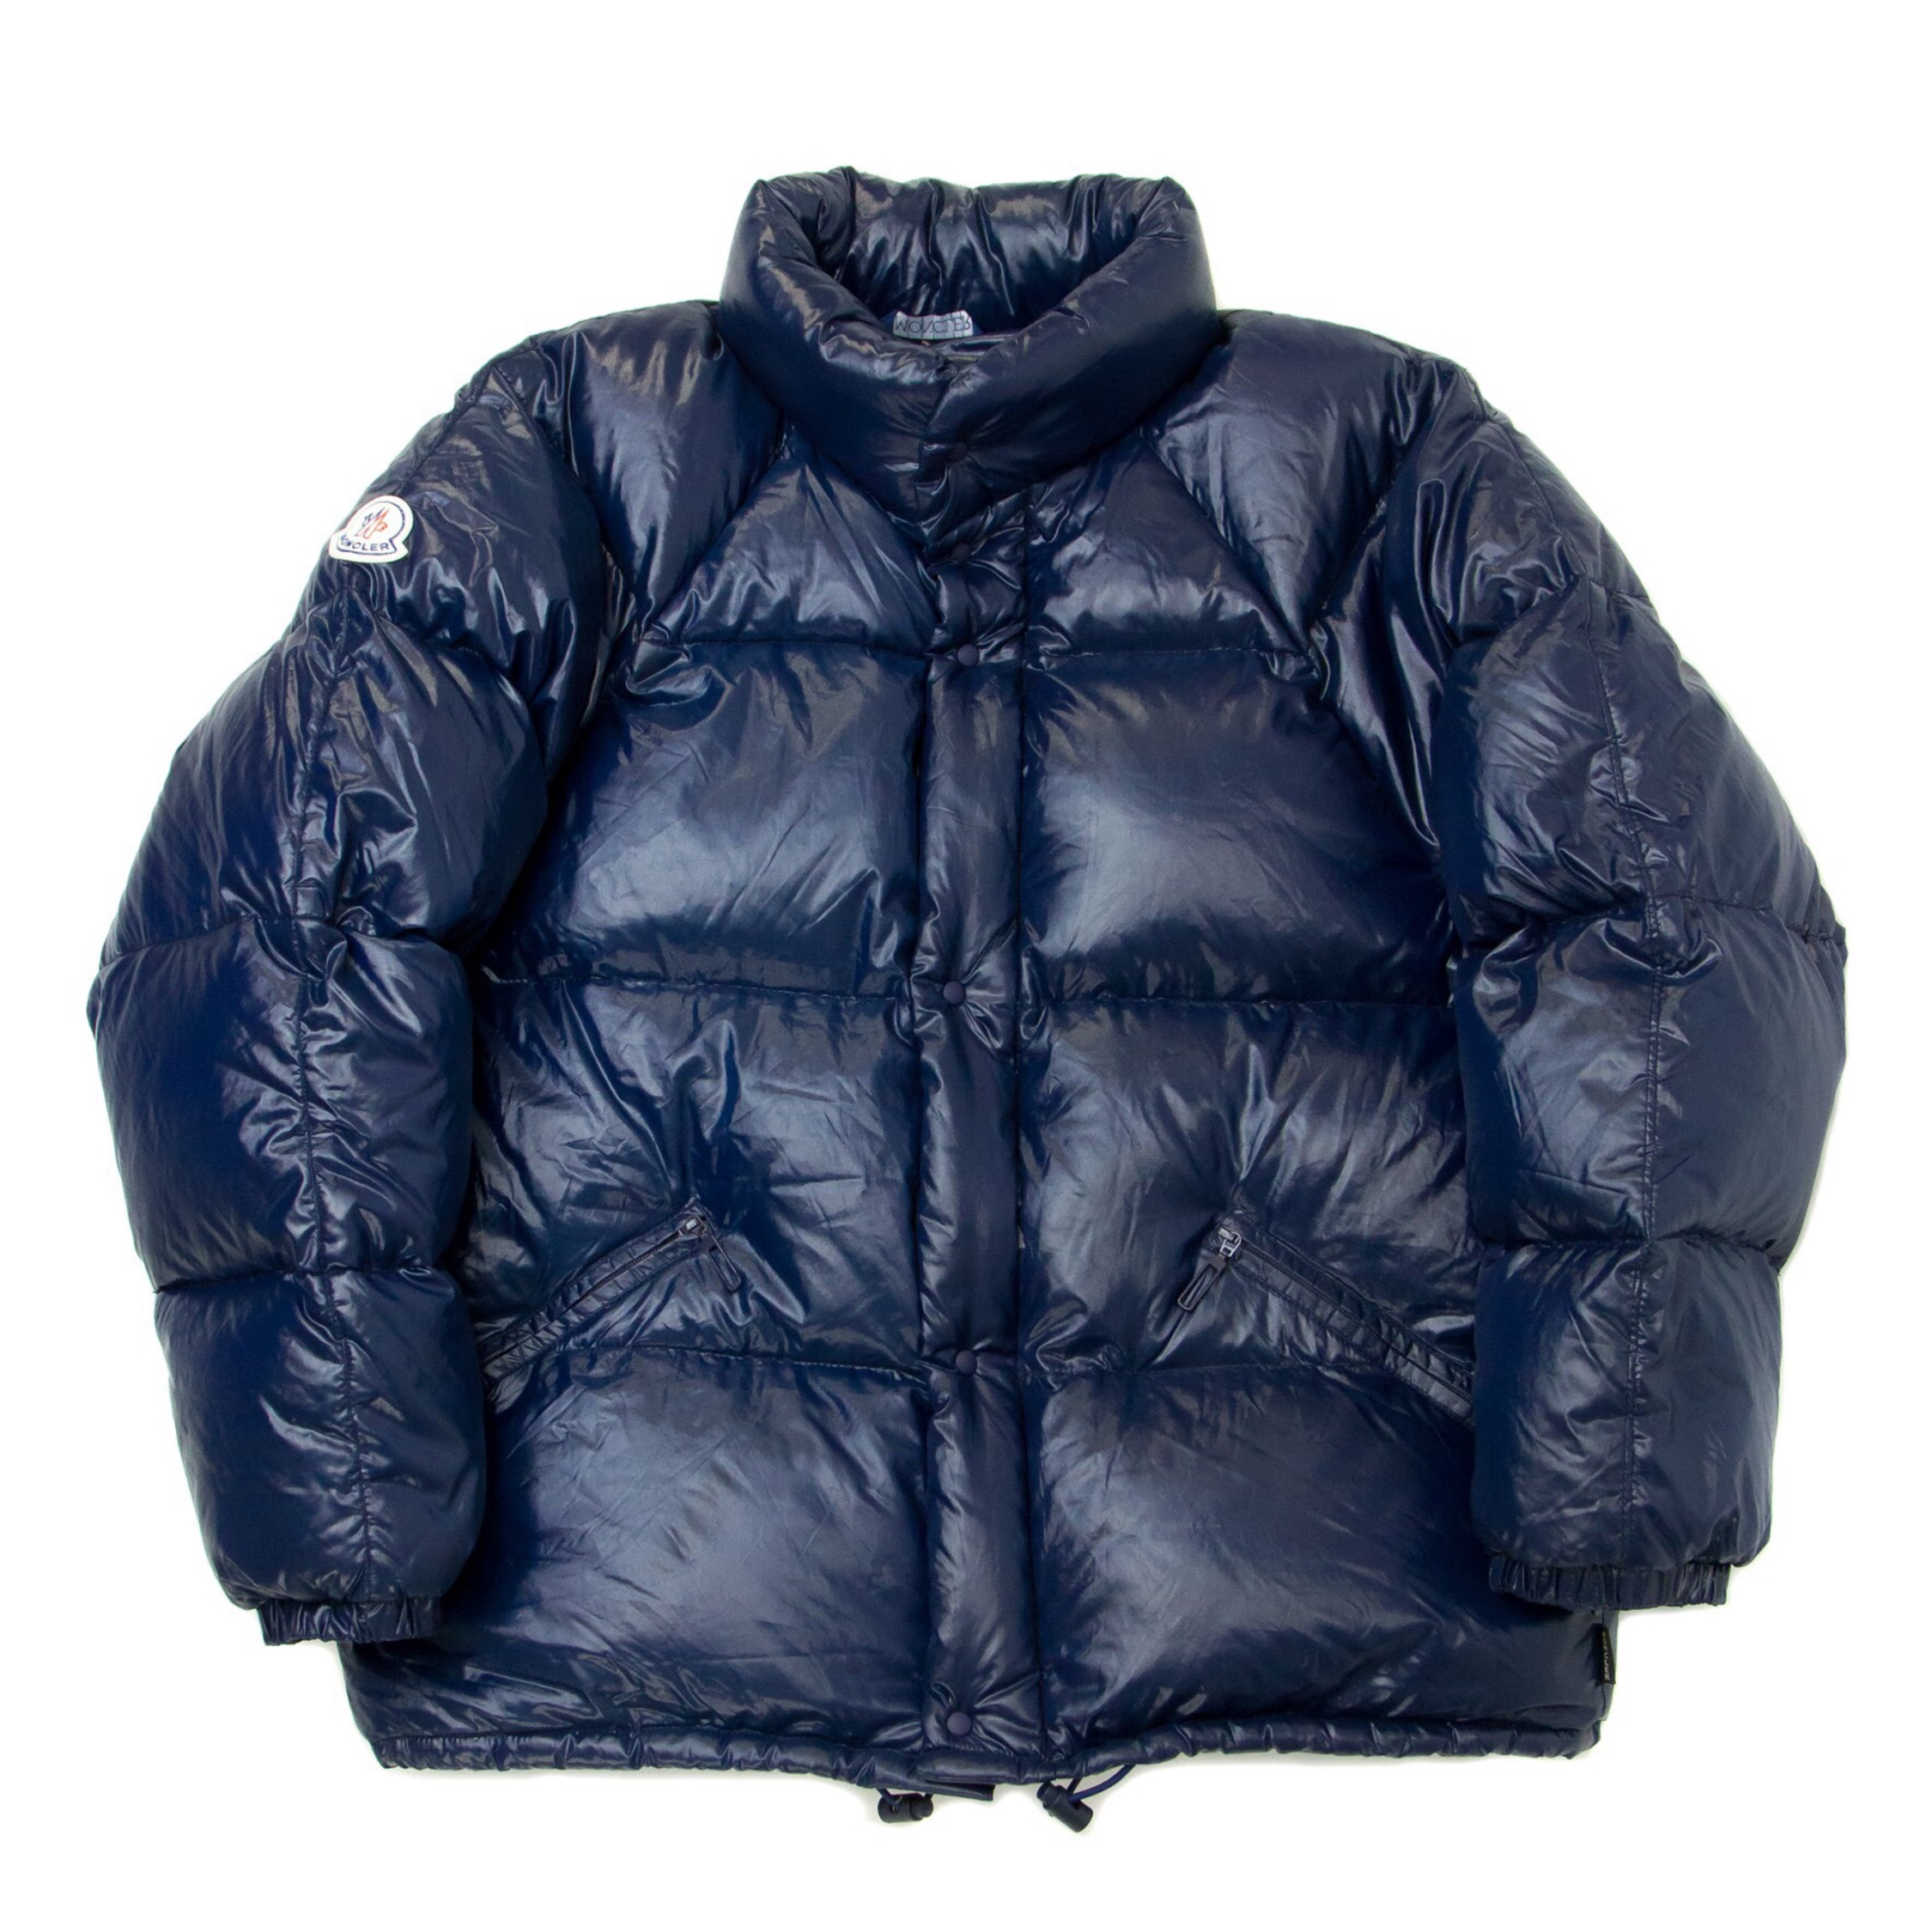 785aafd40 Moncler Grenoble Down Puffer Jacket Navy Rare 90S